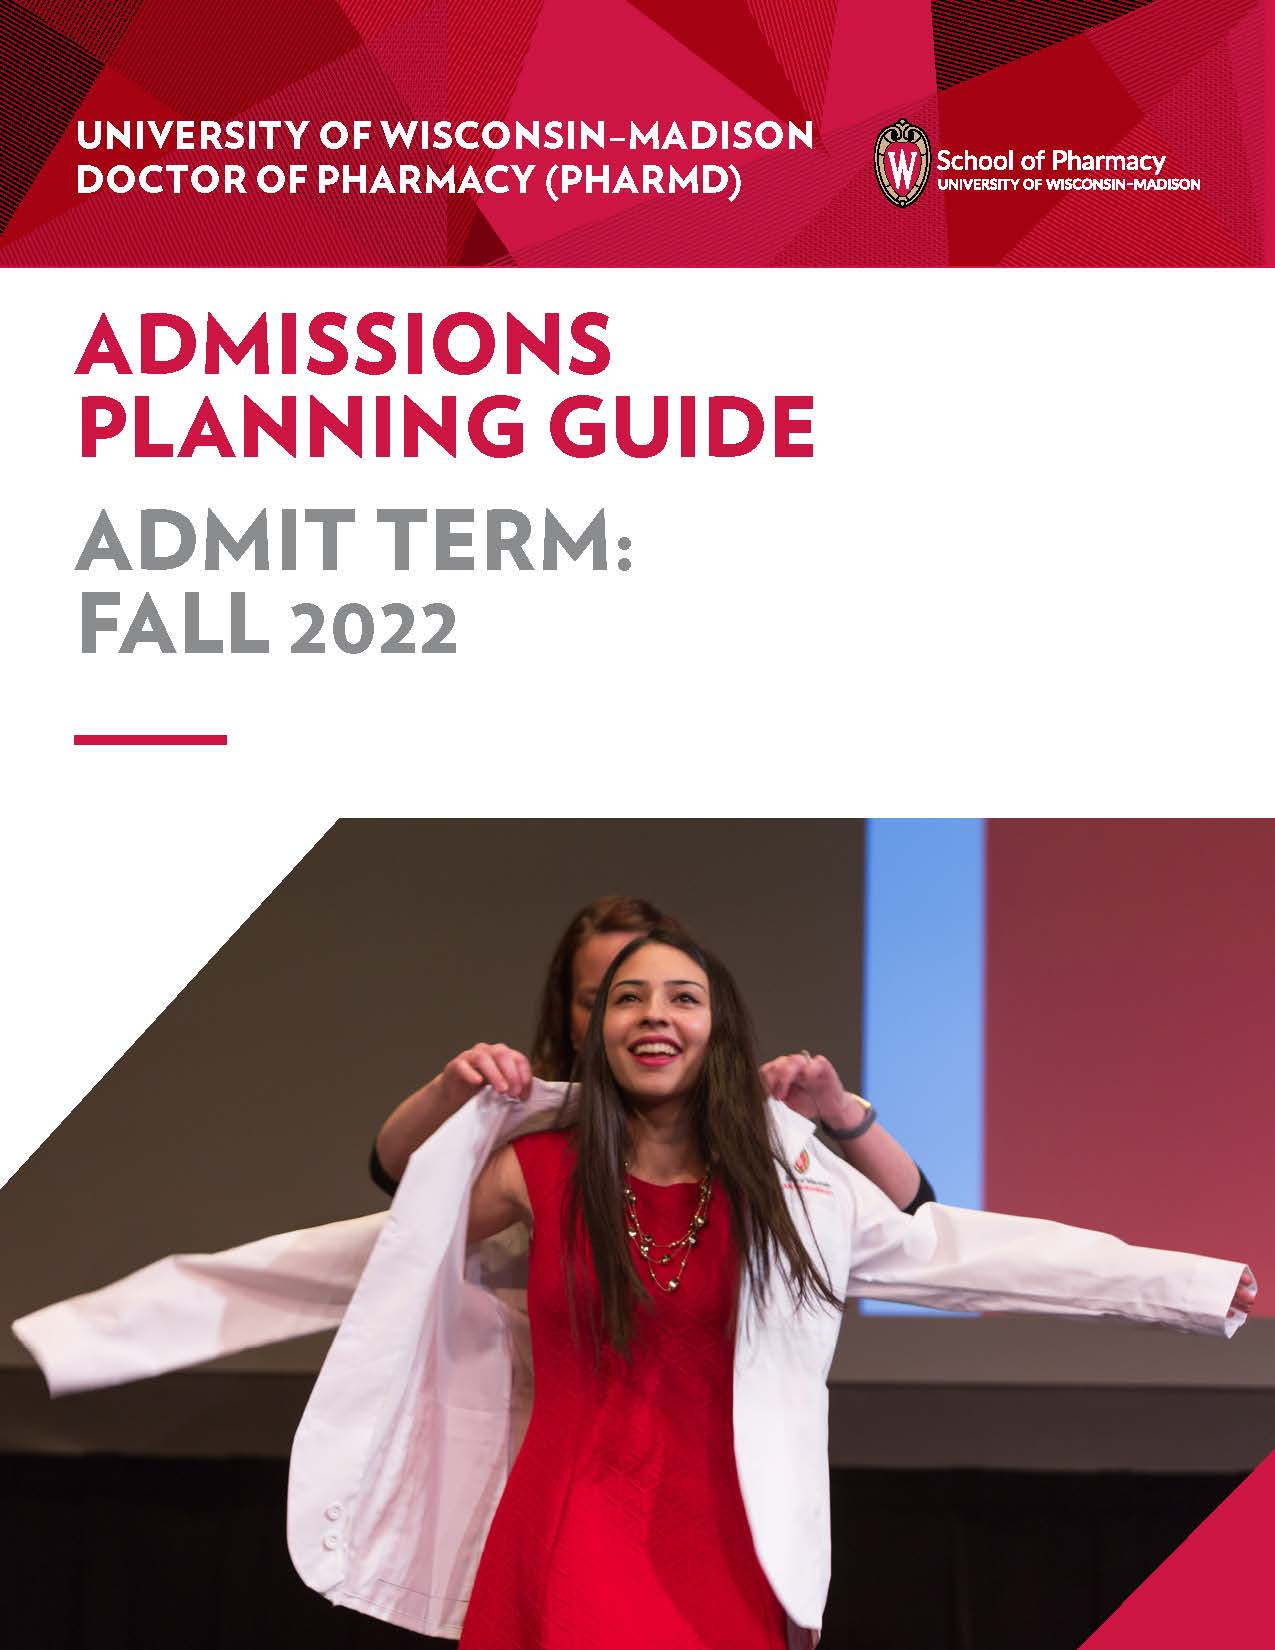 Fall2022_AdmPlanGuide_CoverOnly